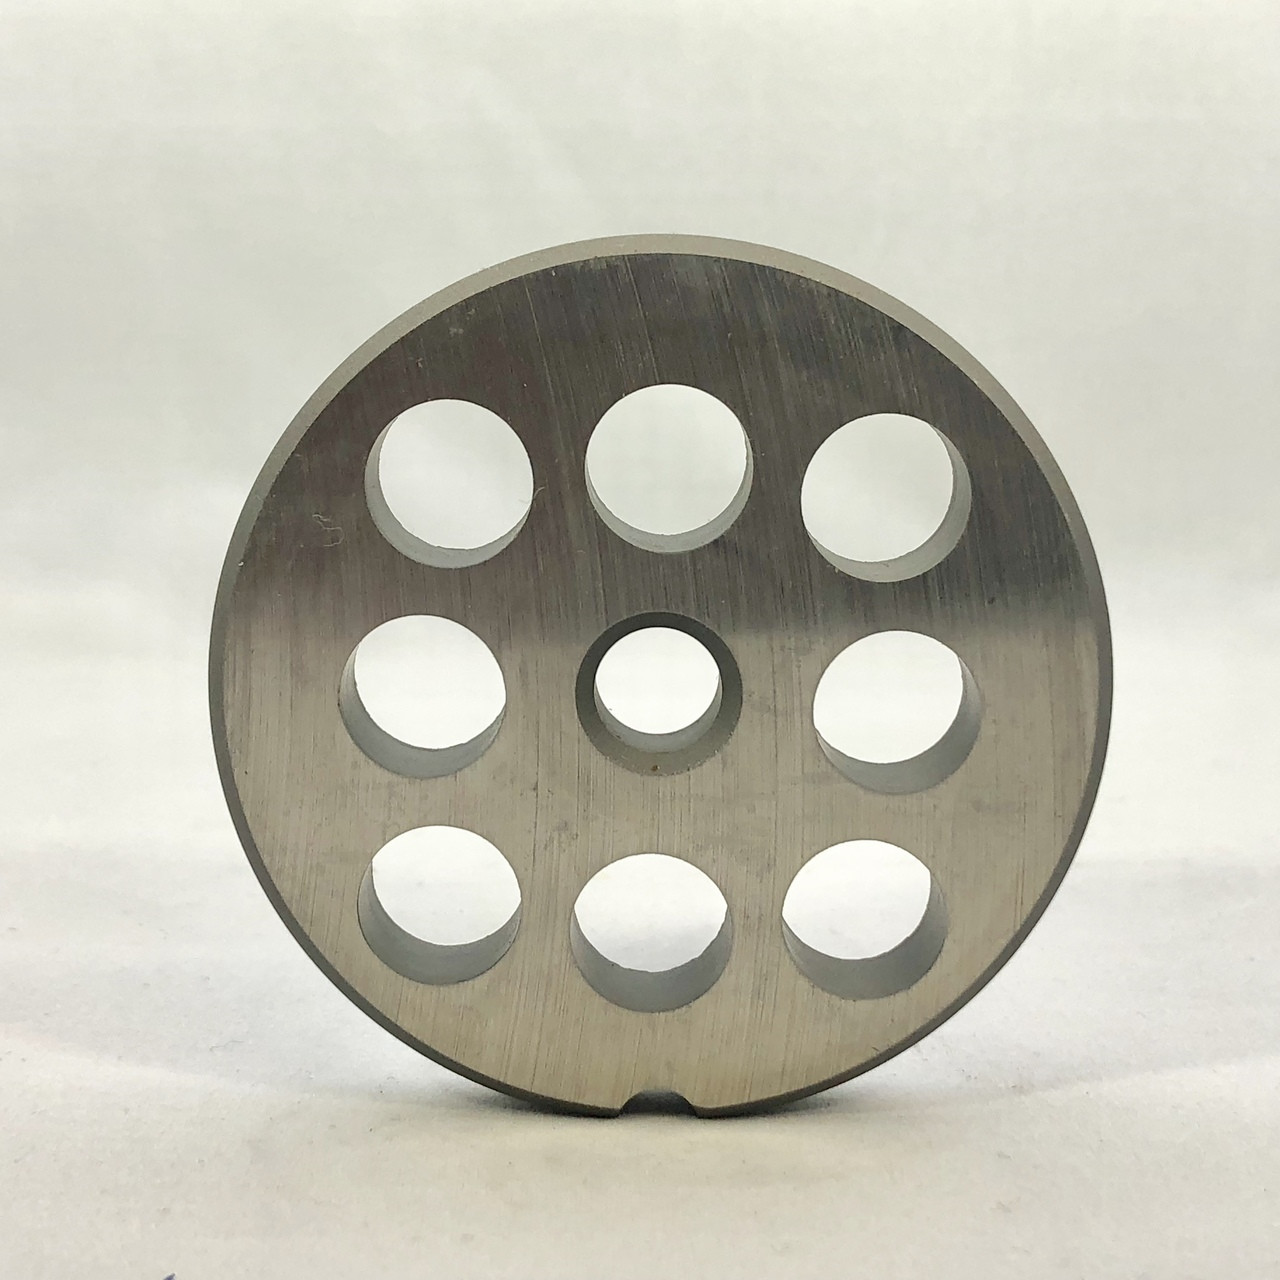 #12 Speco Meat Grinder Plate with 1/2' Holes - Reversible & Hubbed Plate - 107375 & 106800